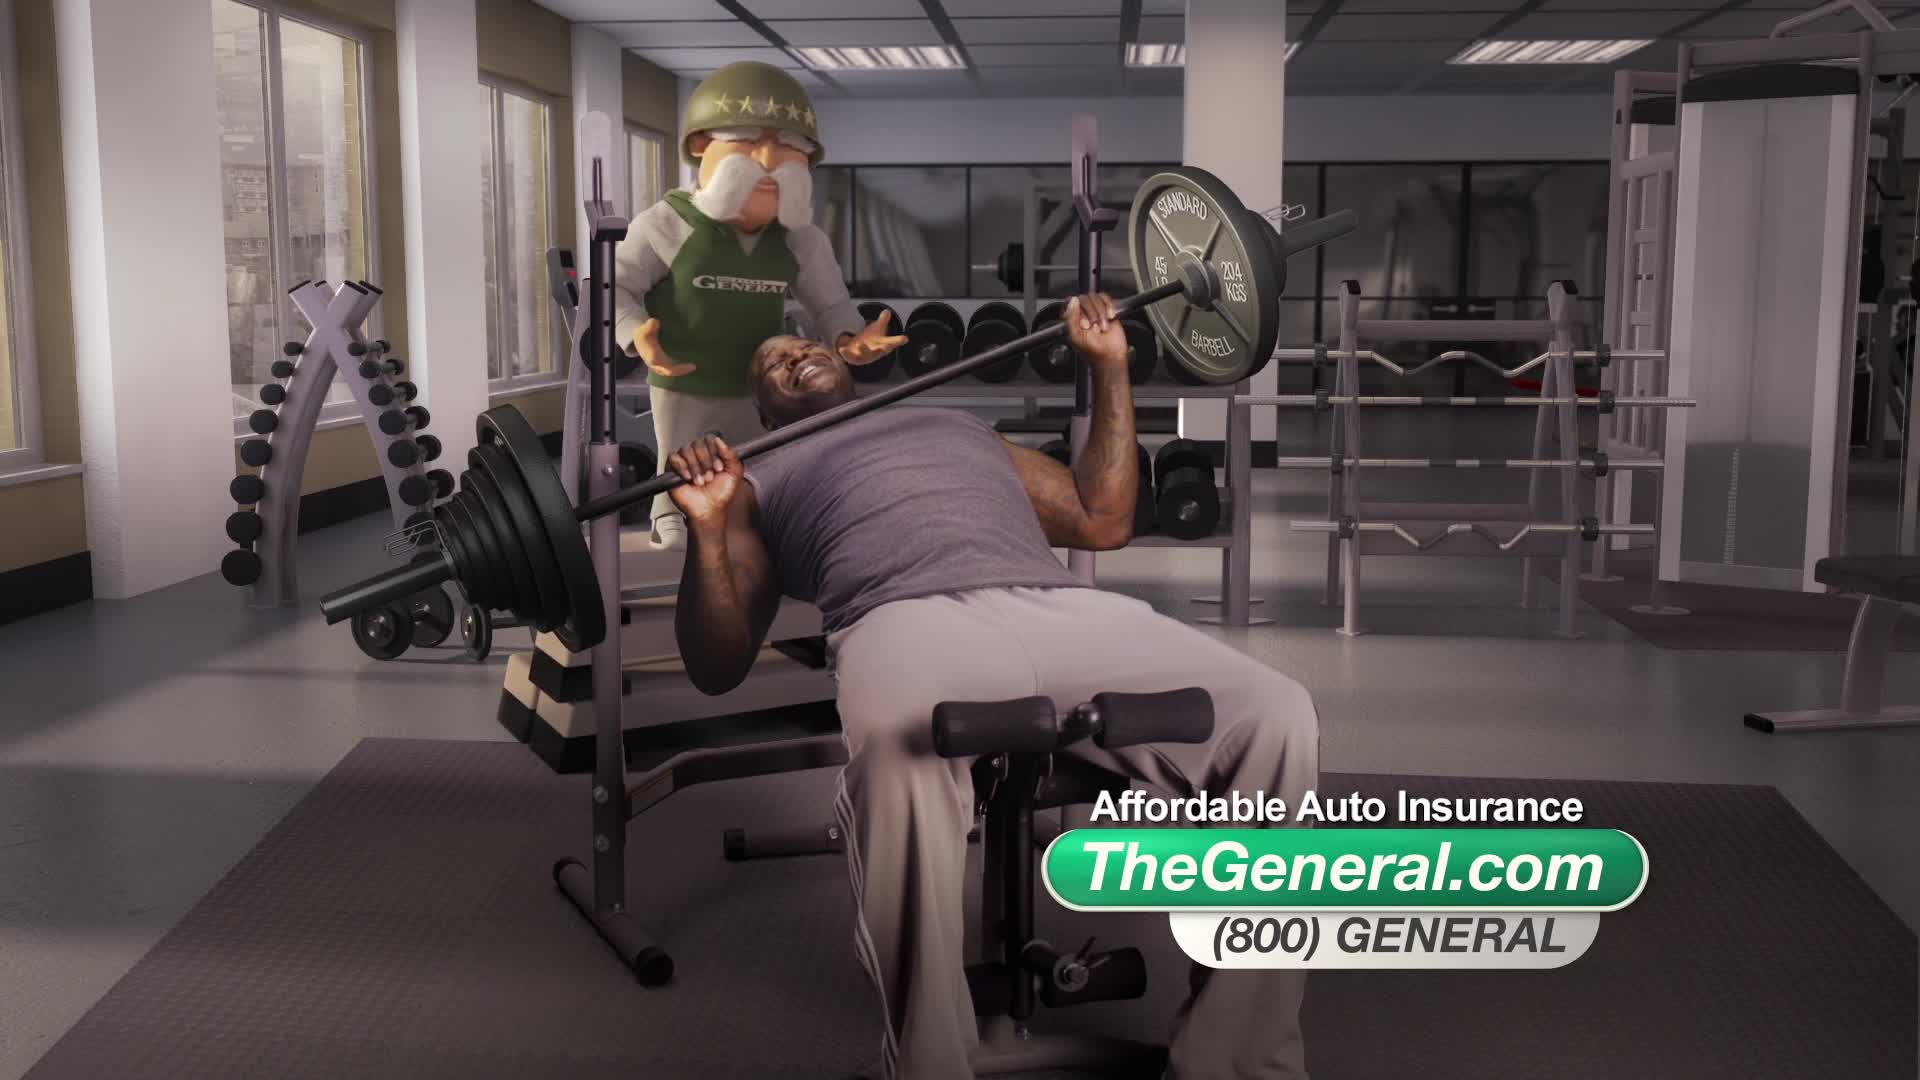 auto insurance, car insurance, funny commercial, shaq, shaq and the general, shaq the genearl, shaquille oneal, the general, the general insurance, Shaq - Weightlifting GIFs